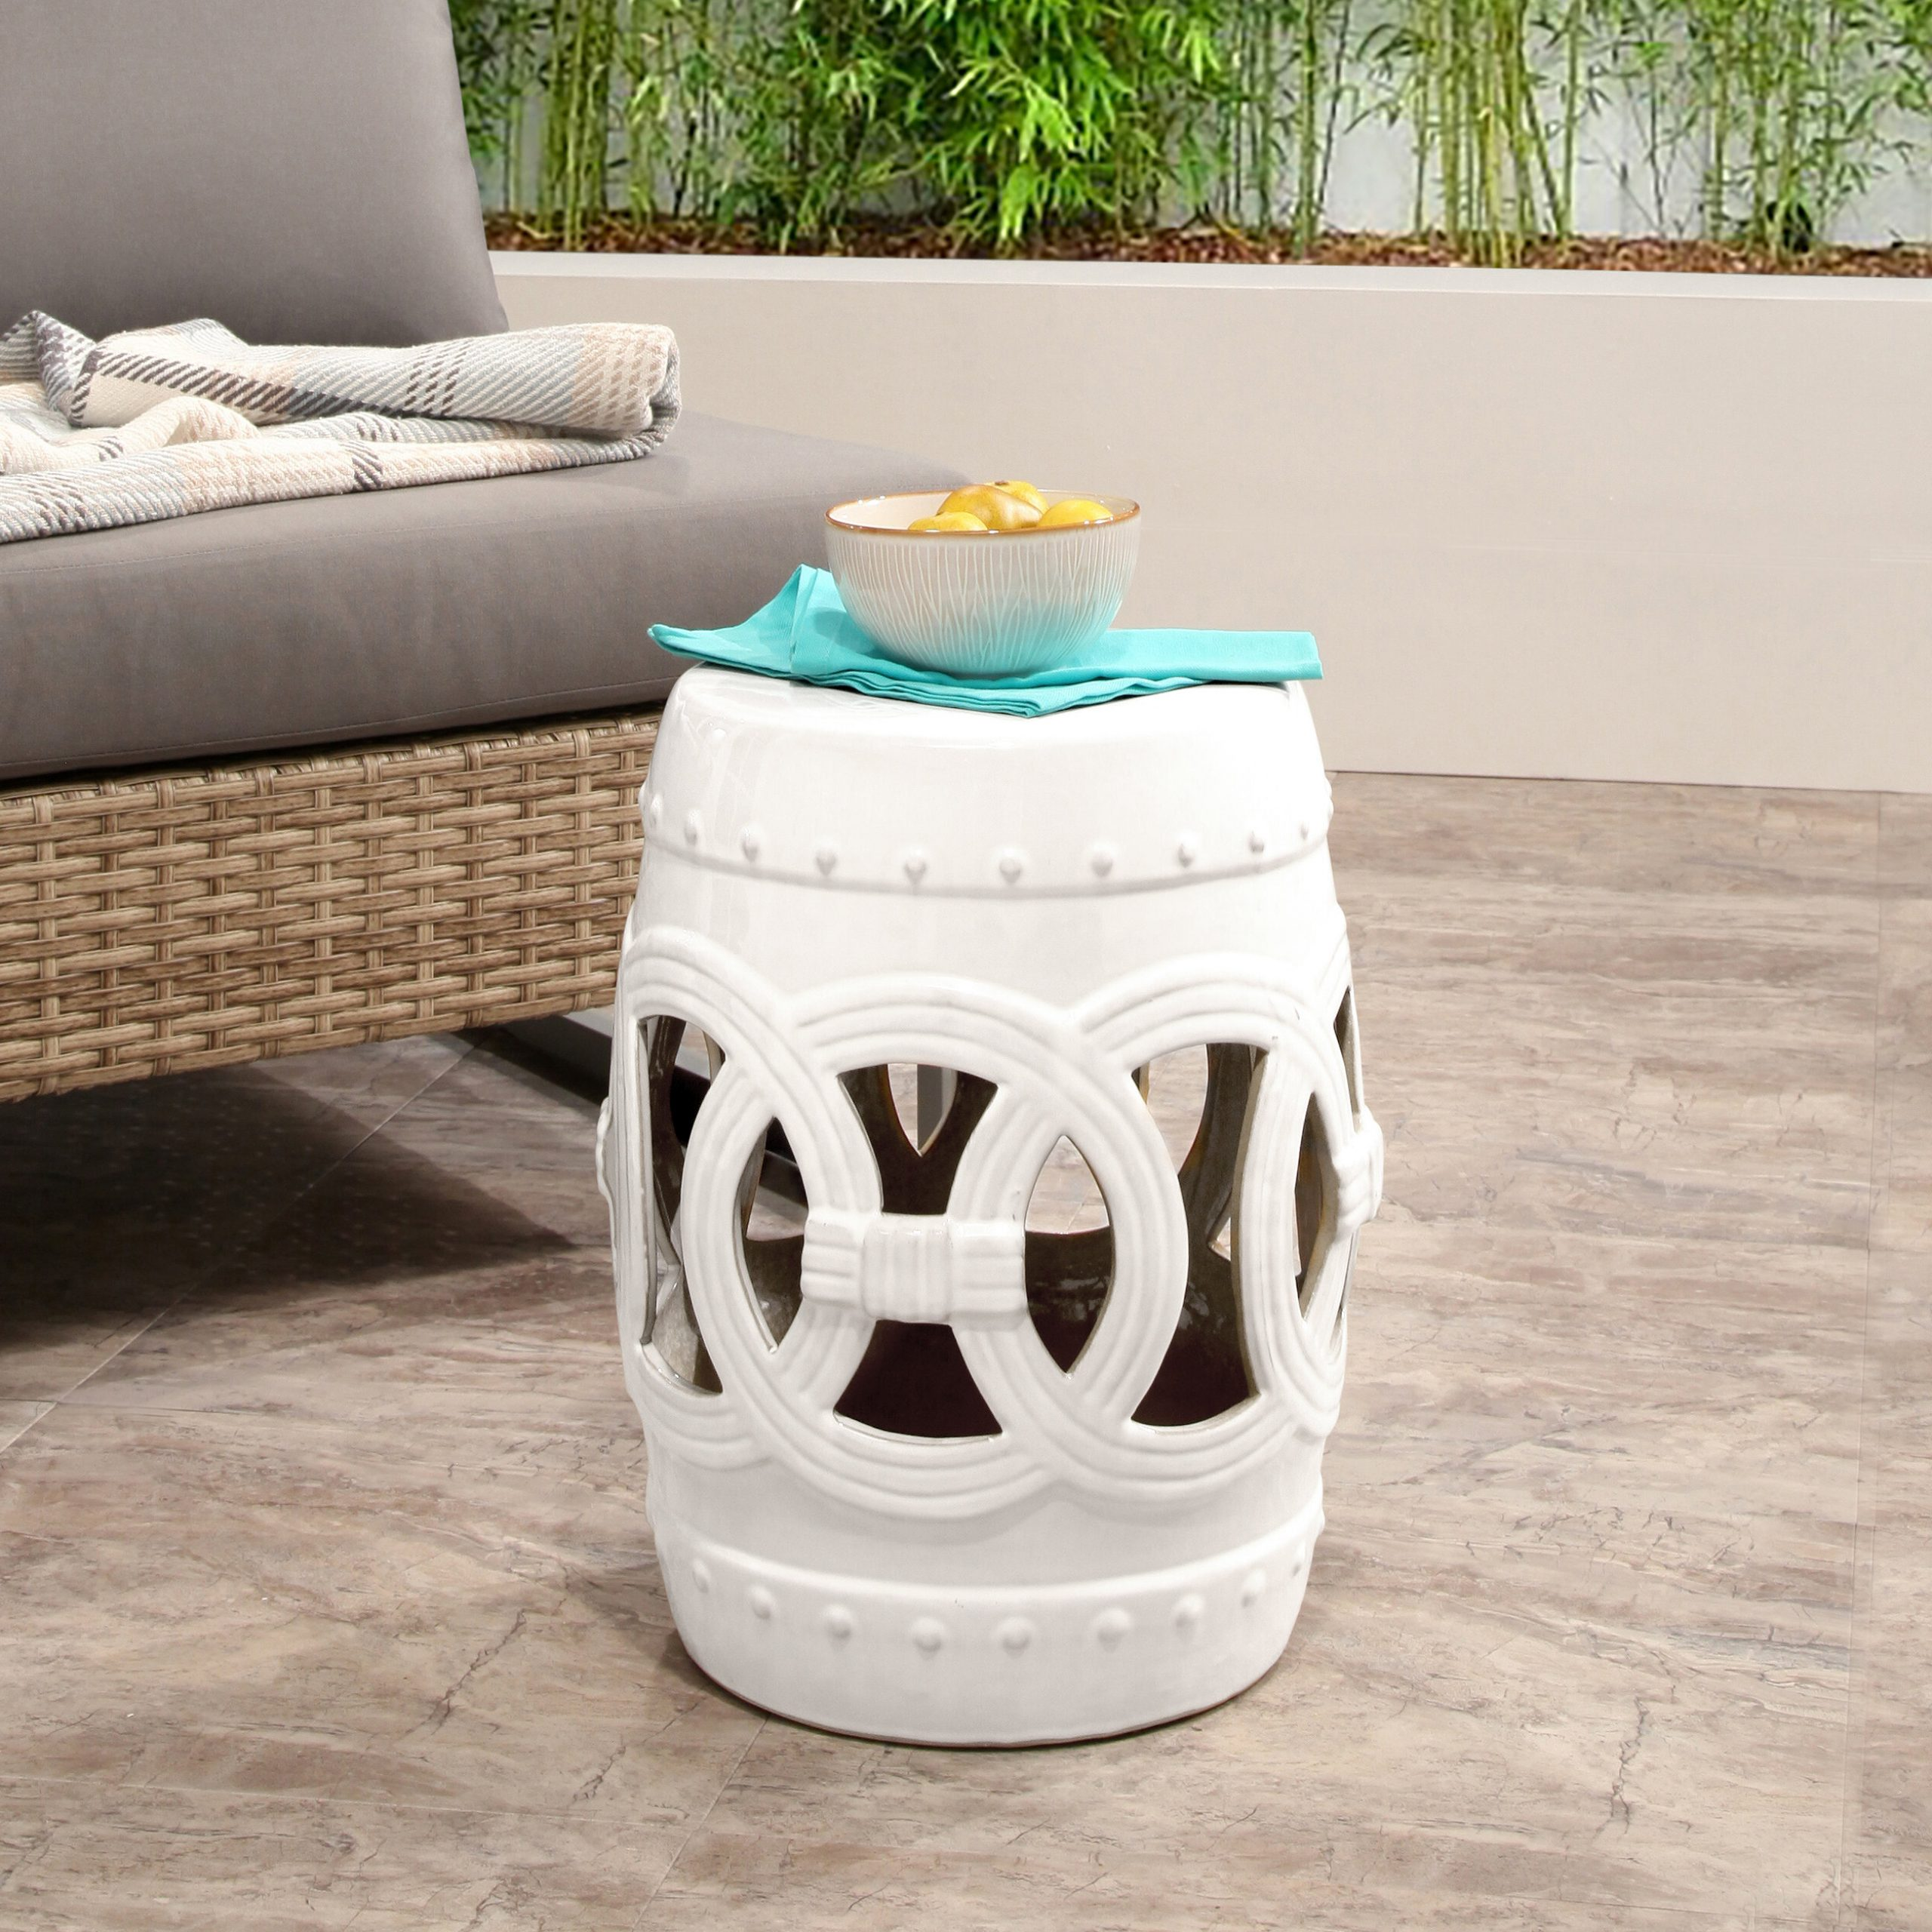 Holbeach Garden Stool Pertaining To Latest Holbrook Ceramic Garden Stools (View 6 of 30)